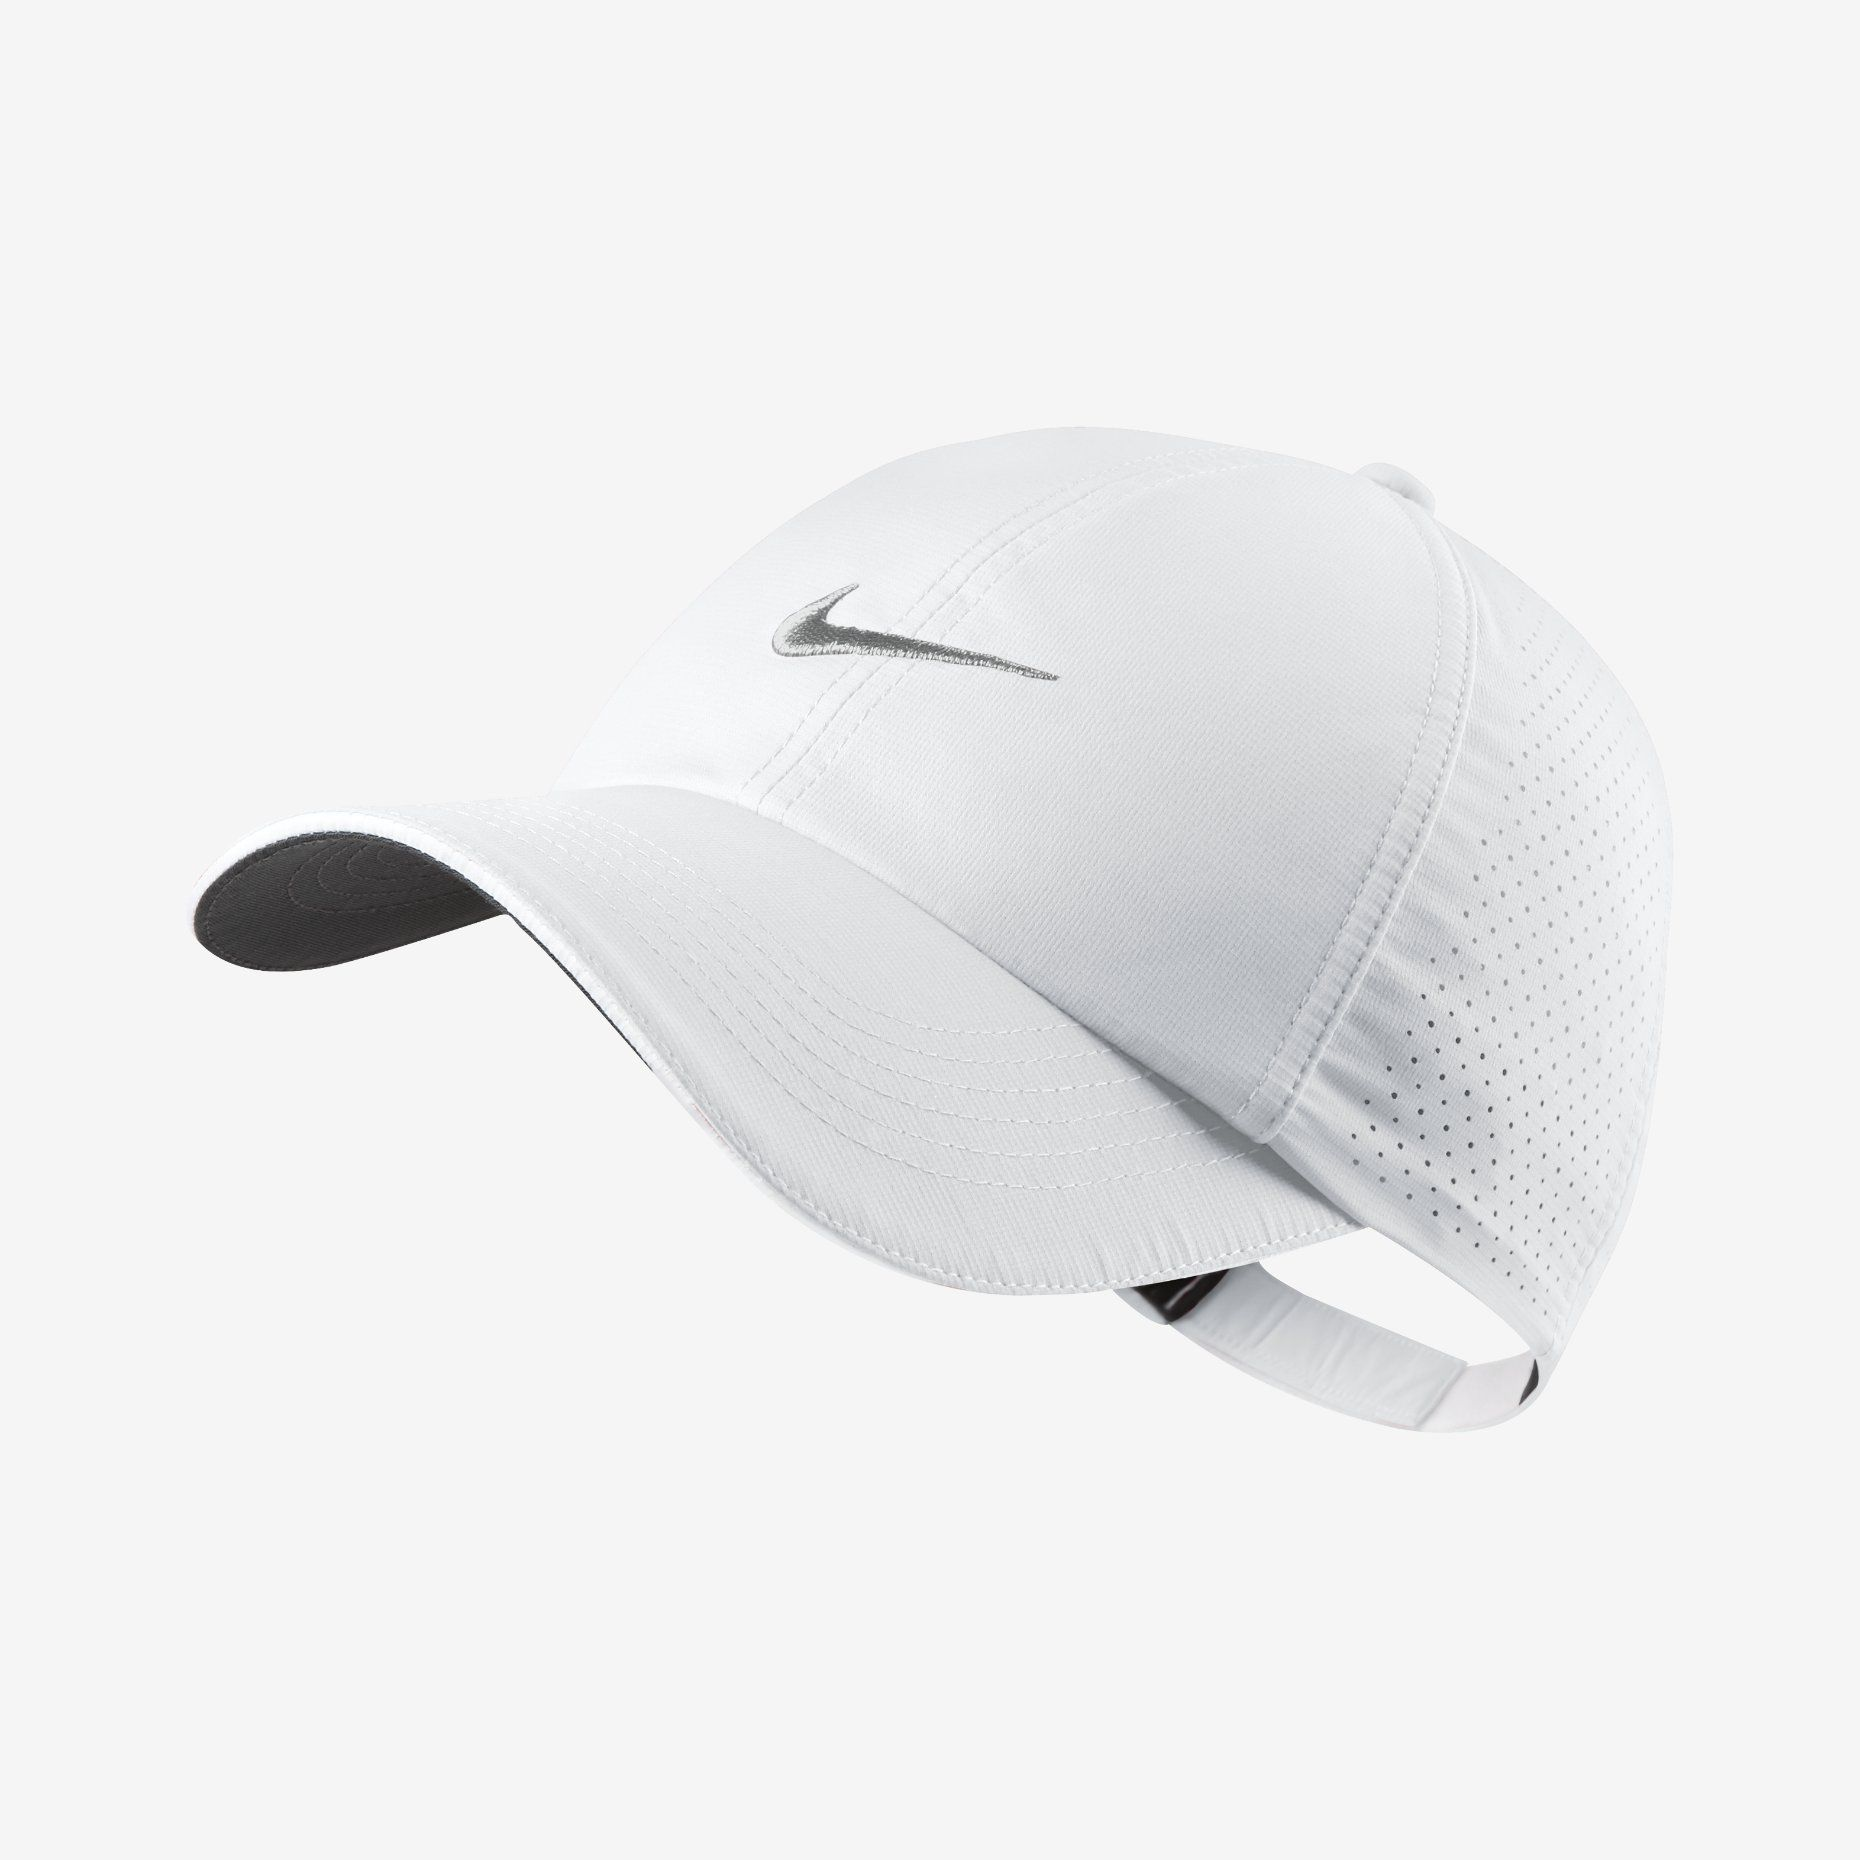 Nike Perforated Women s Golf Hat  c68928ce8d8